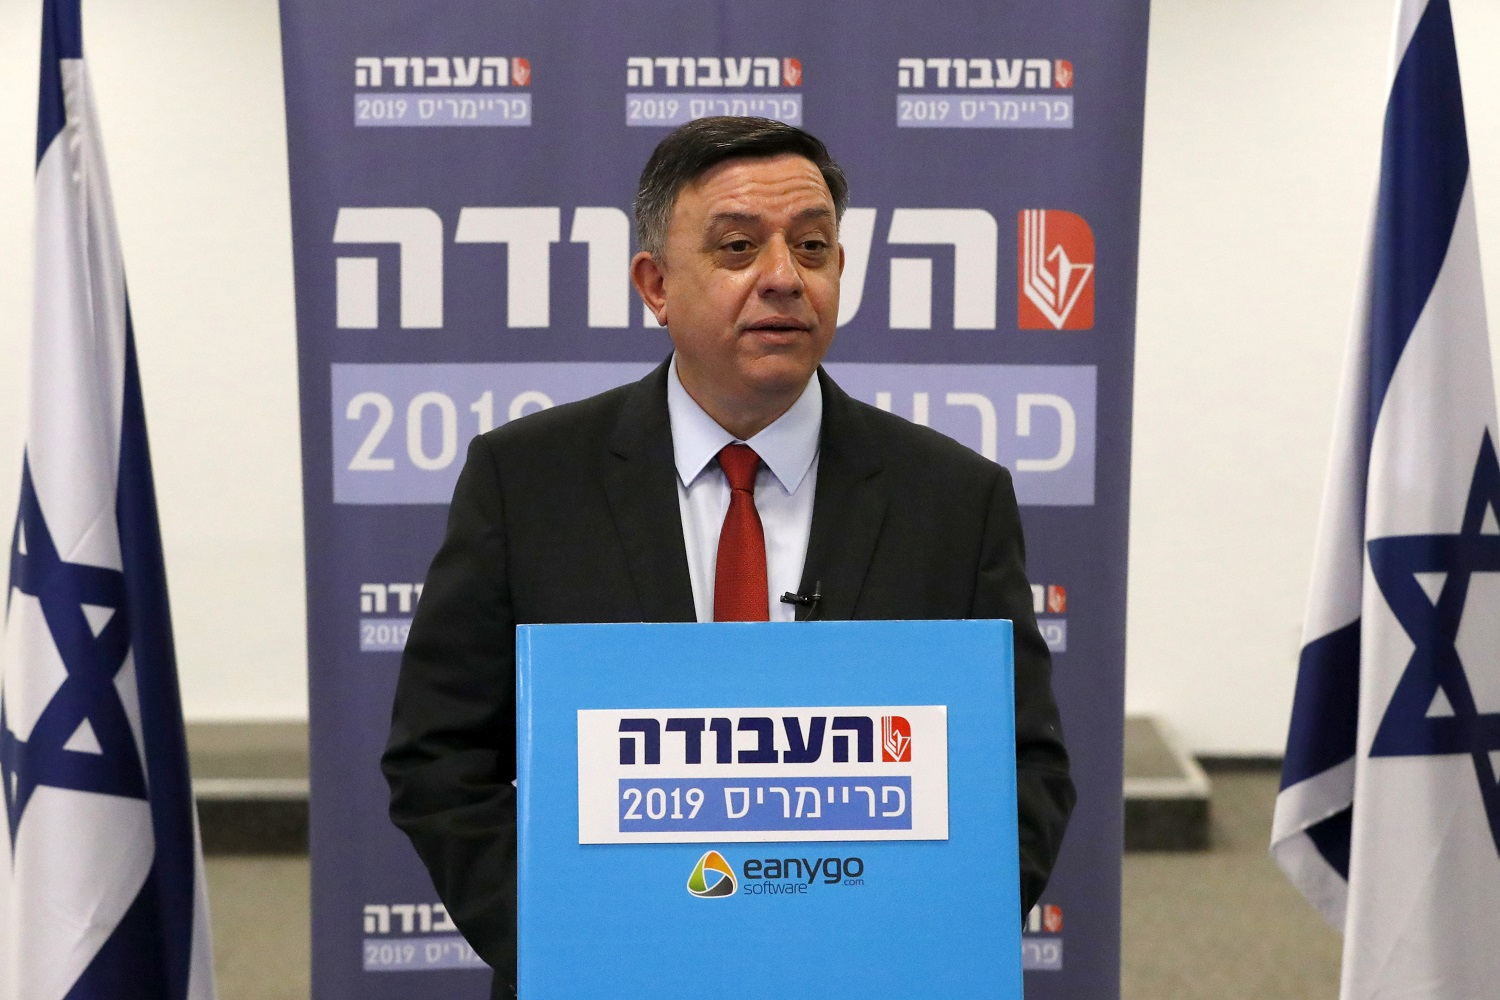 Avi Gabbay, Labor Party chairman, casts his vote during his party's primaries in Tel Aviv in February 2019 (AFP)